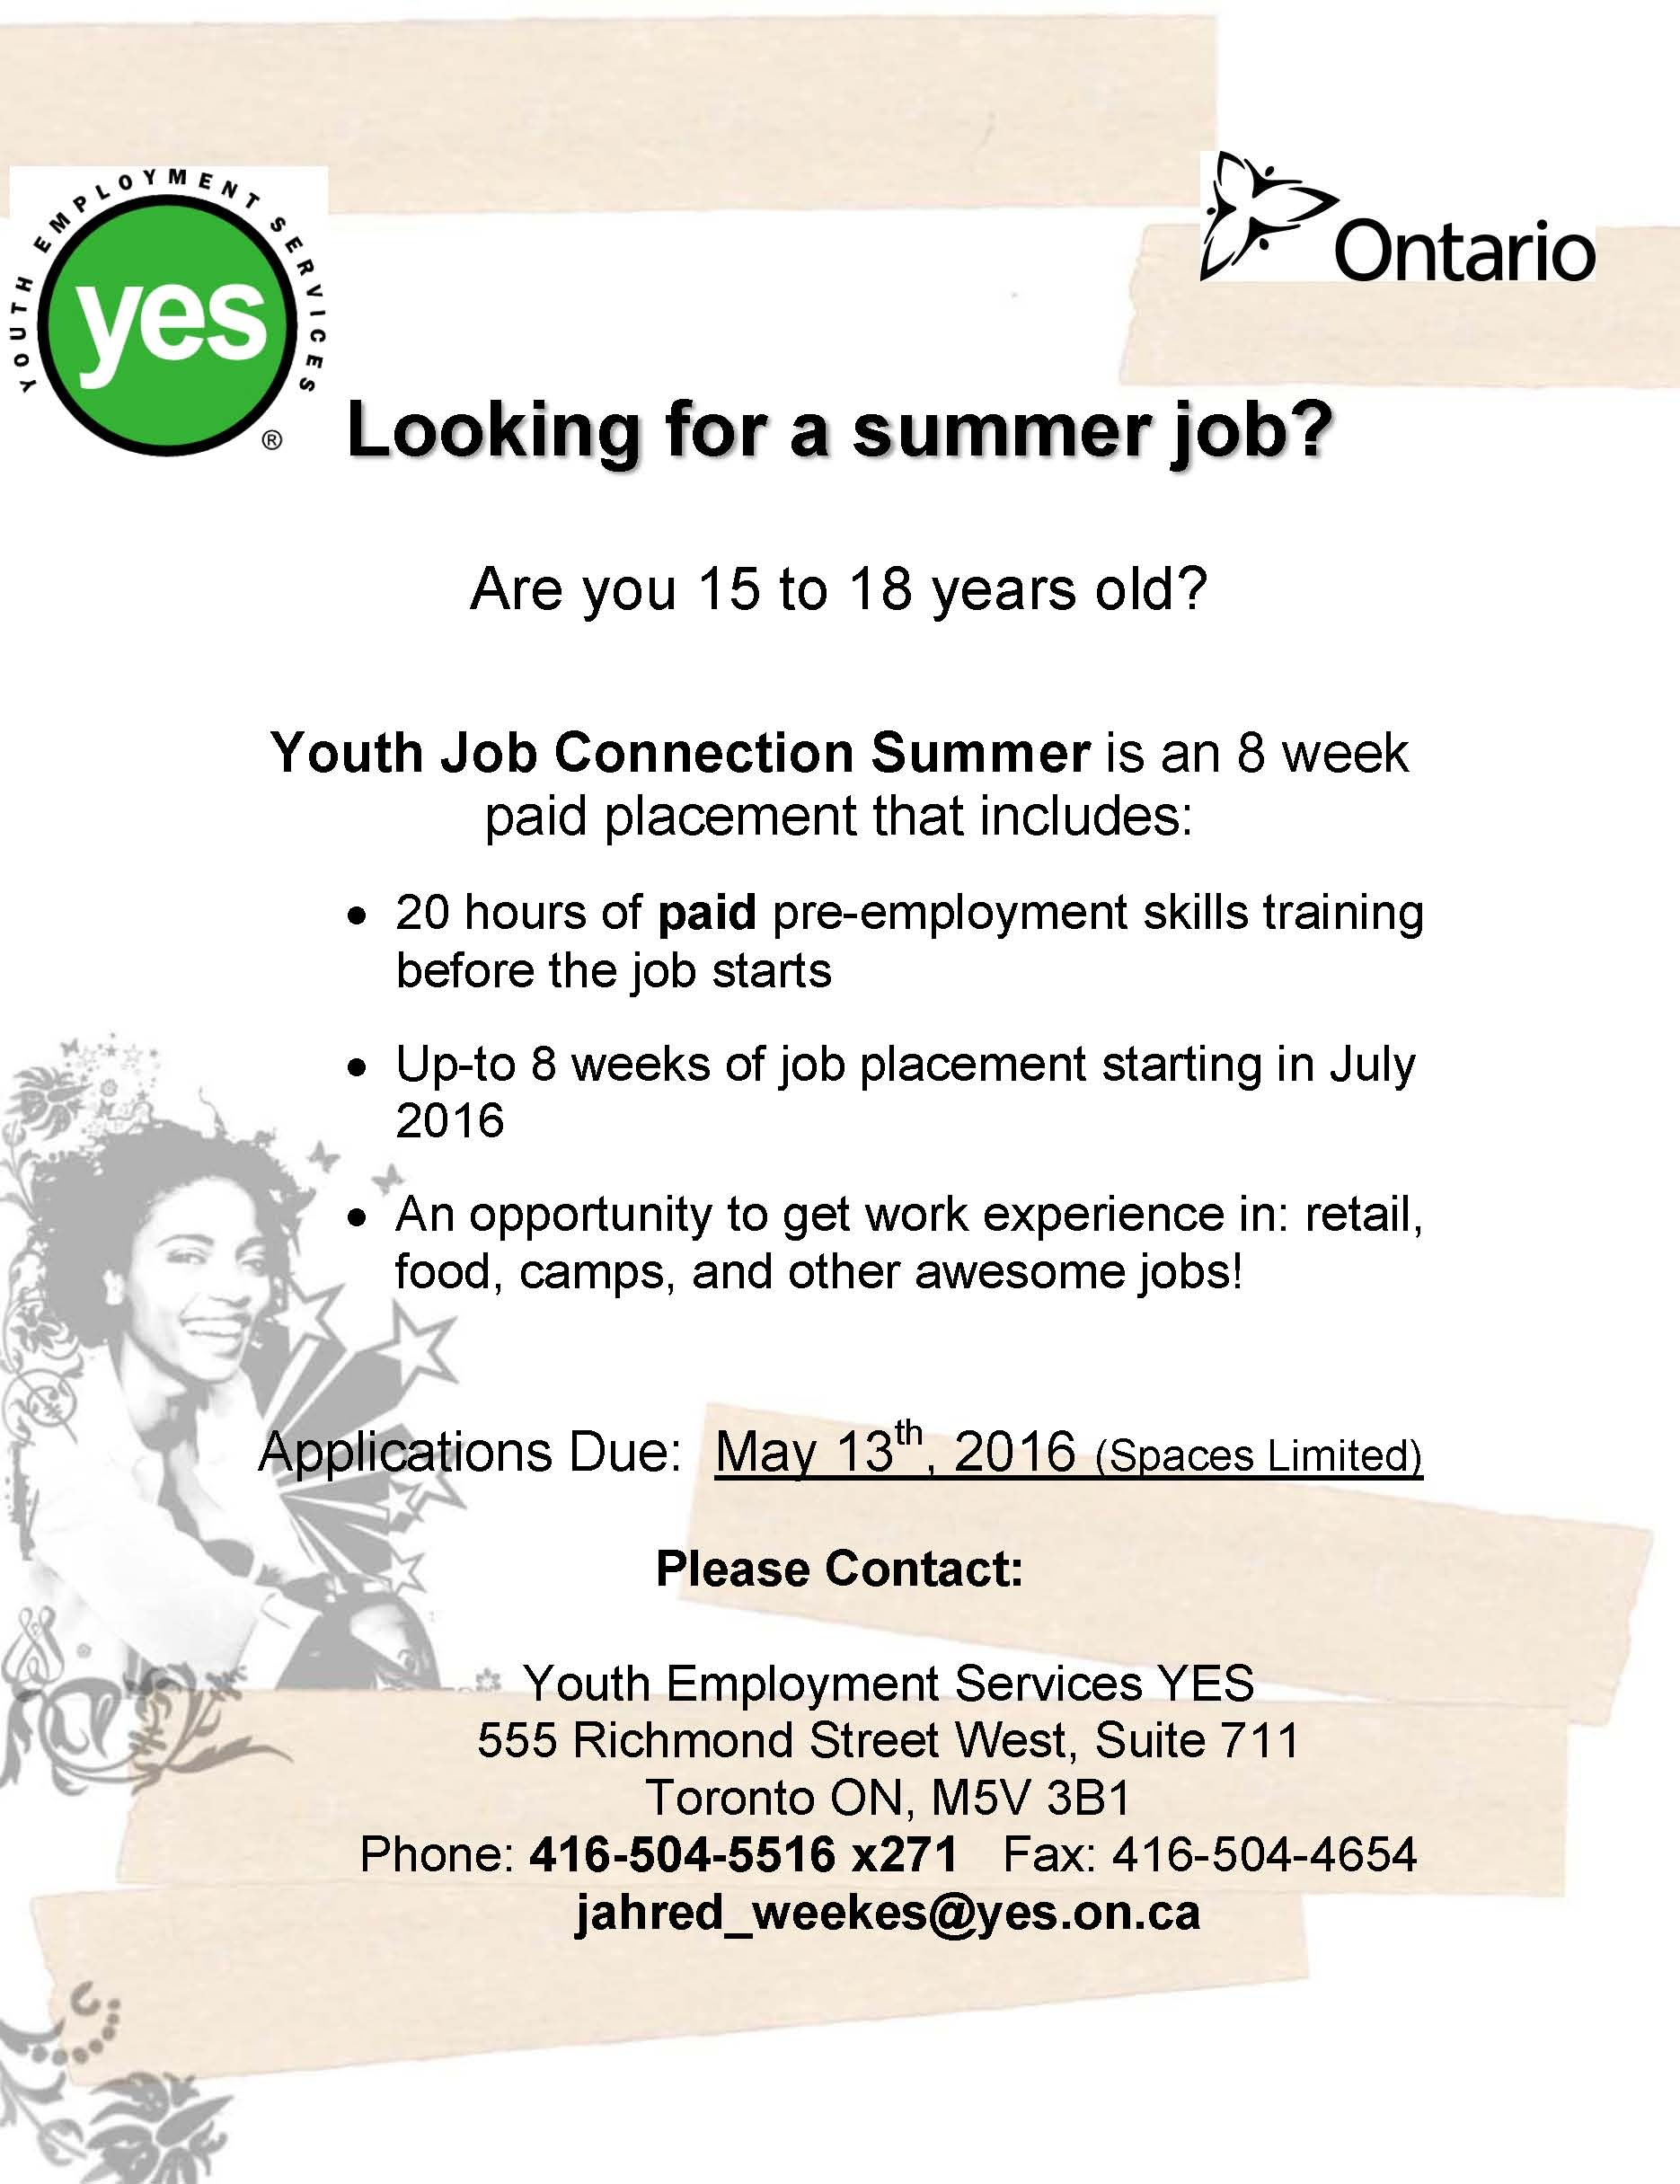 youth job connection summer is now accepting applications yjc summer